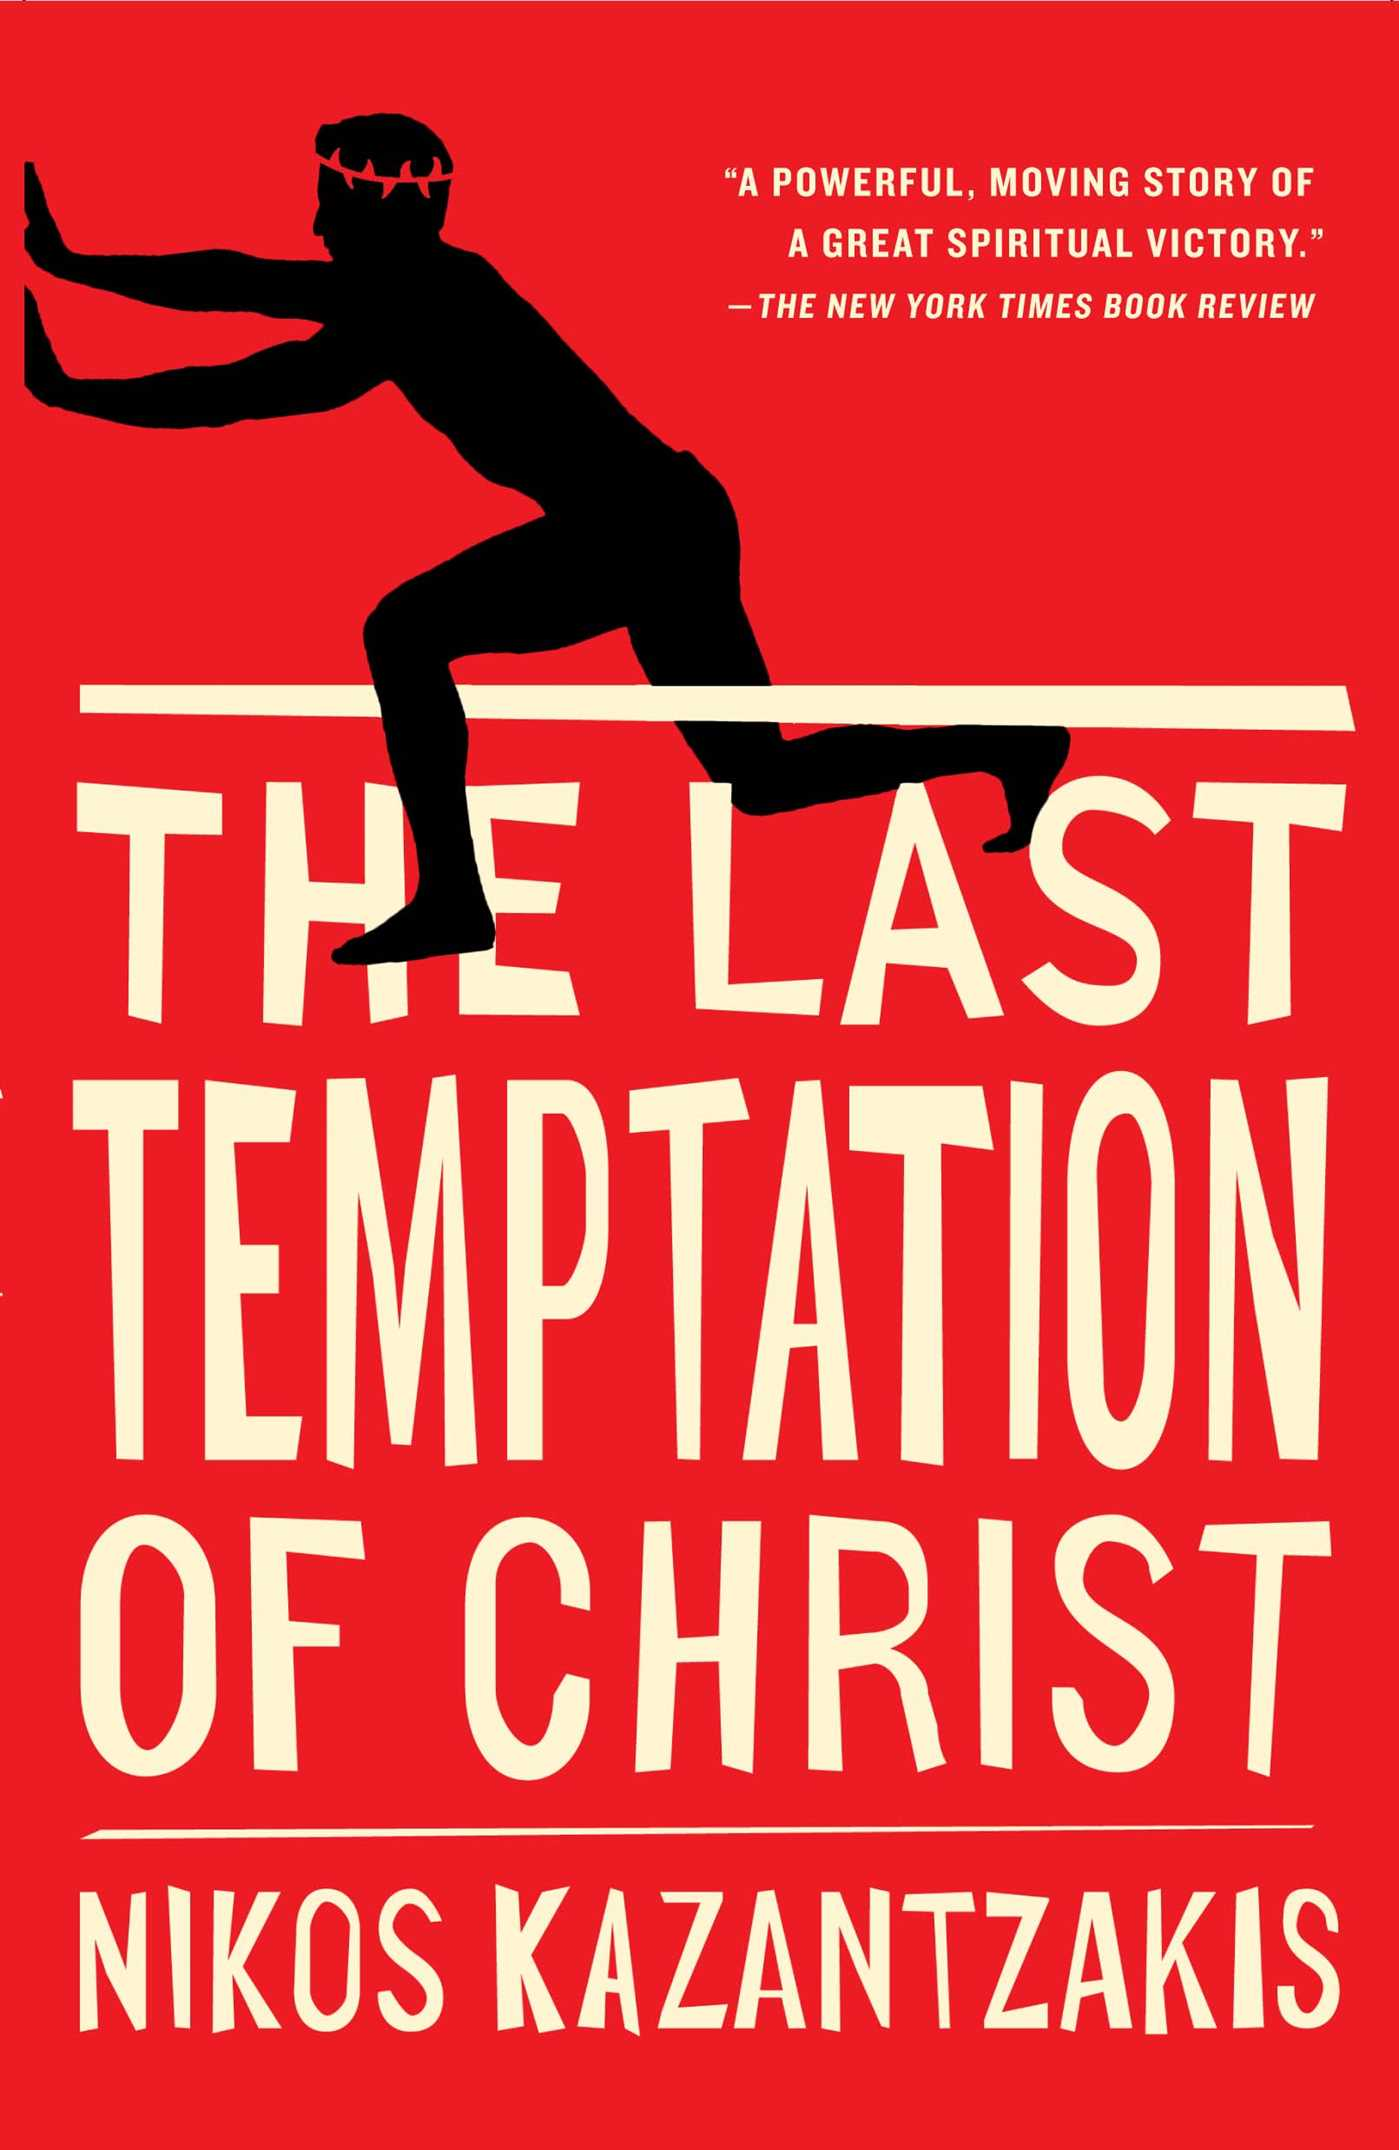 Last-temptation-of-christ-9780684852560_hr